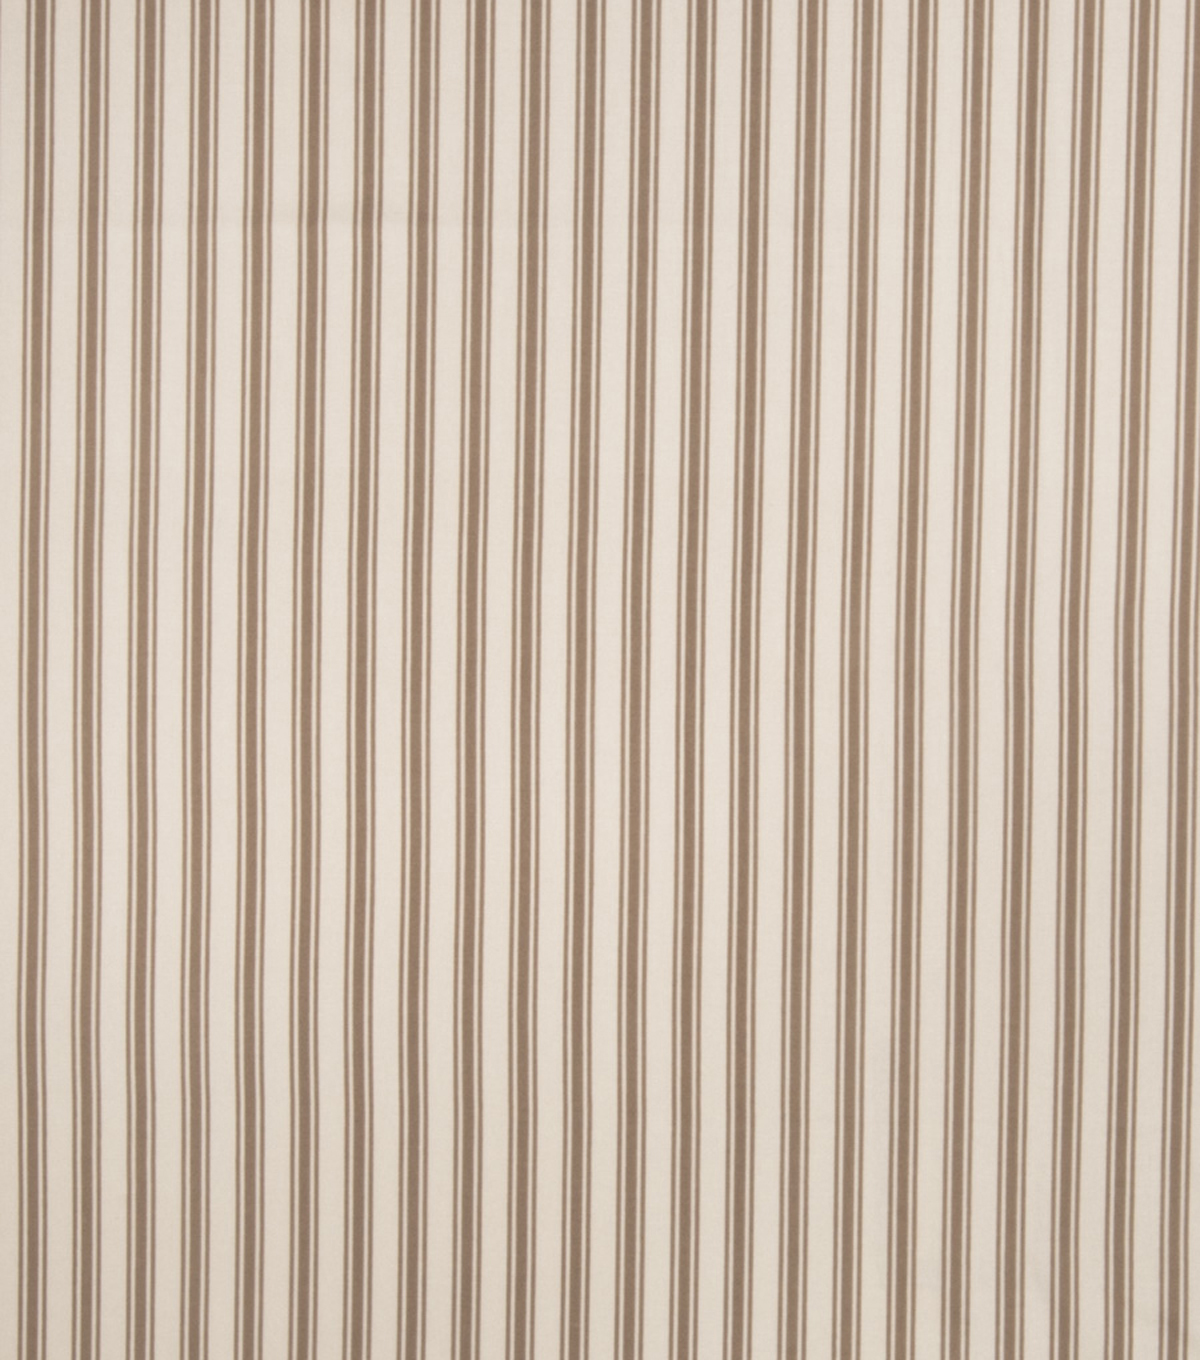 Home Decor 8\u0022x8\u0022 Fabric Swatch-SMC Designs Burnett / Mocha